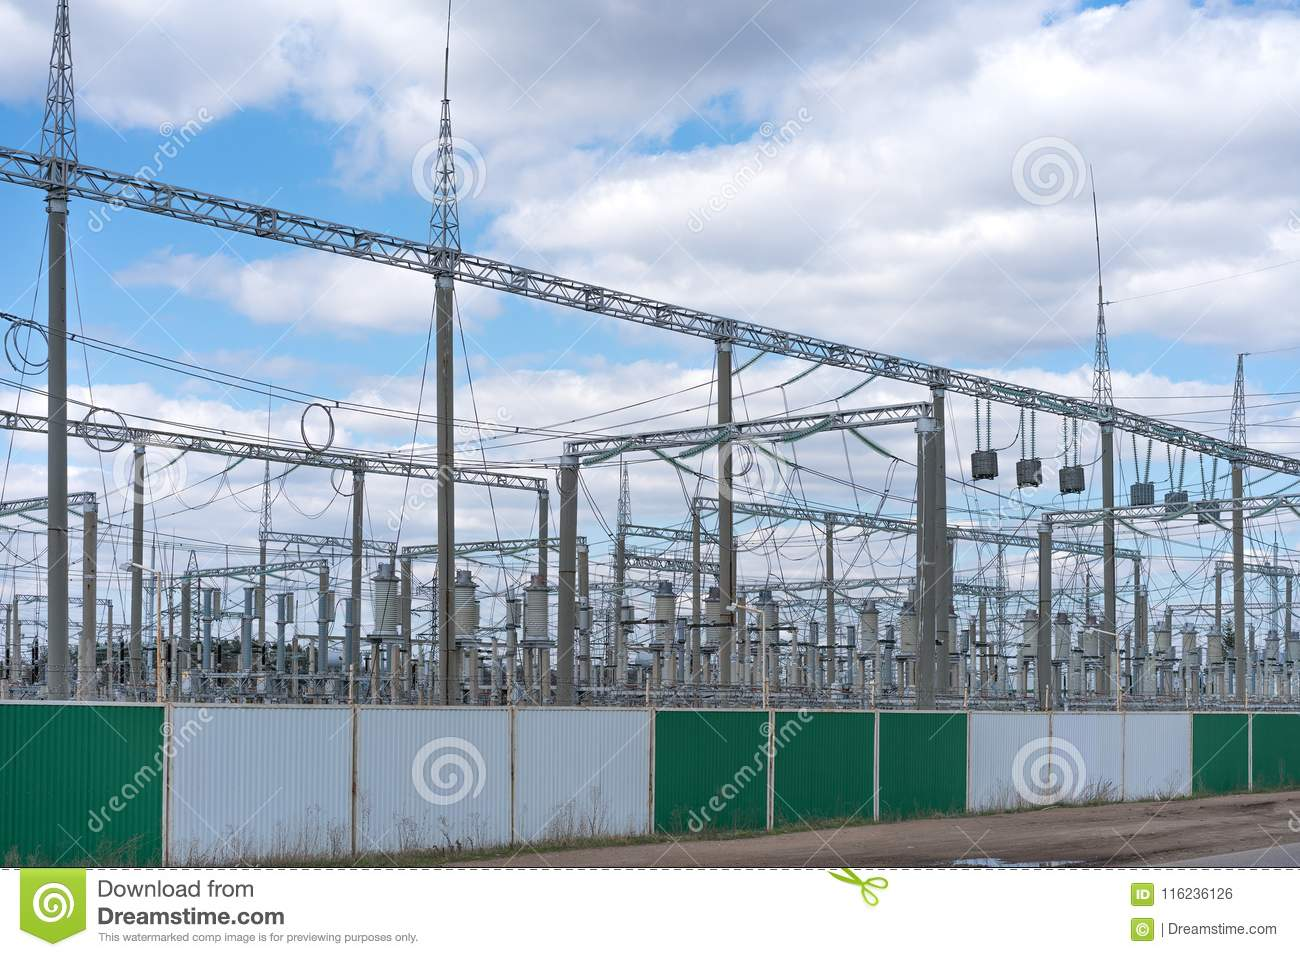 An electricity distribution station in a fenced area